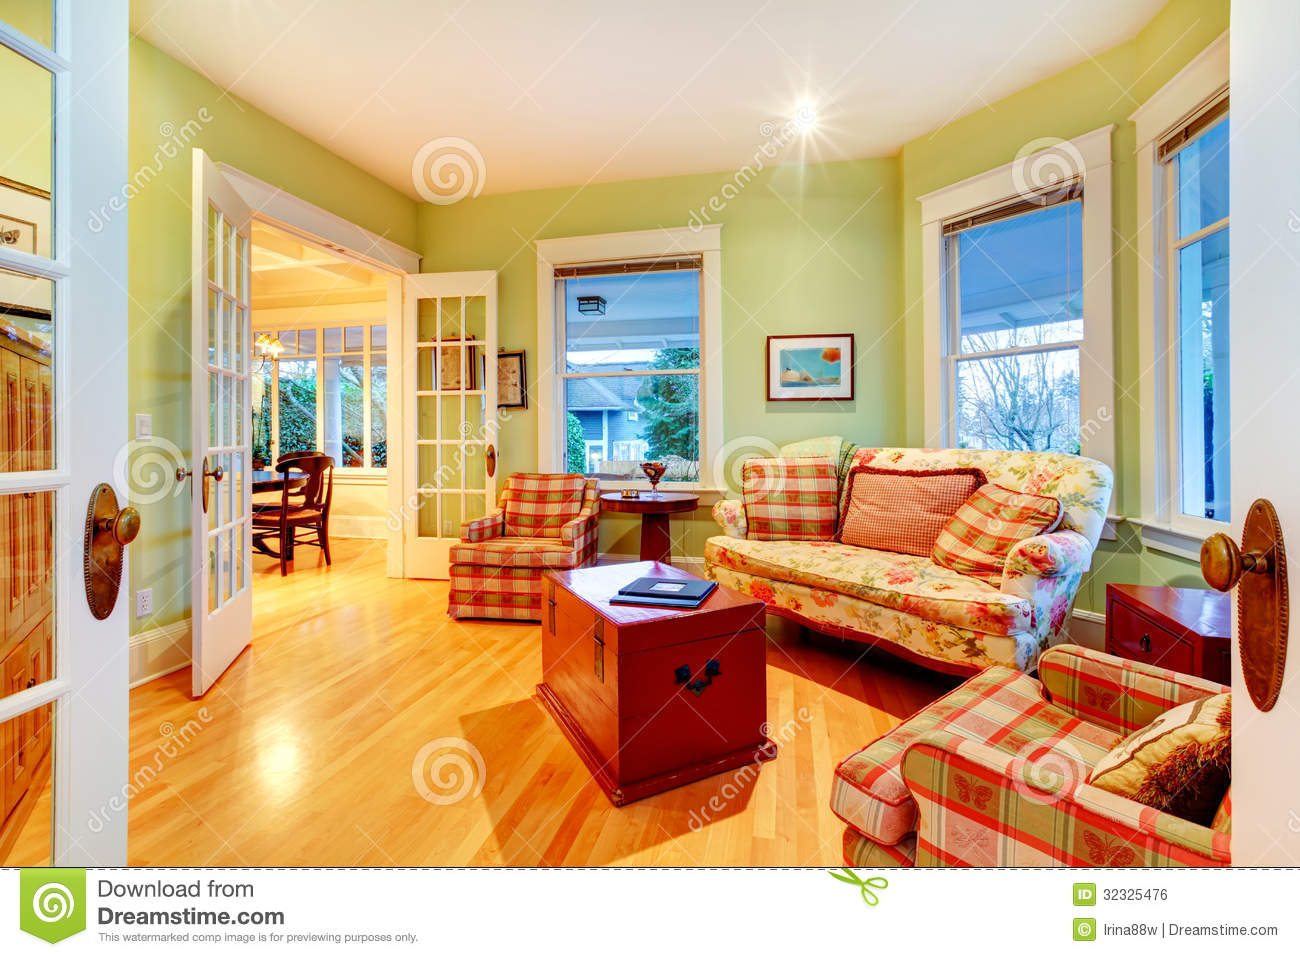 Golden Bright Green Luxury Living Room With Red Sofas Royalty Free Stock Image